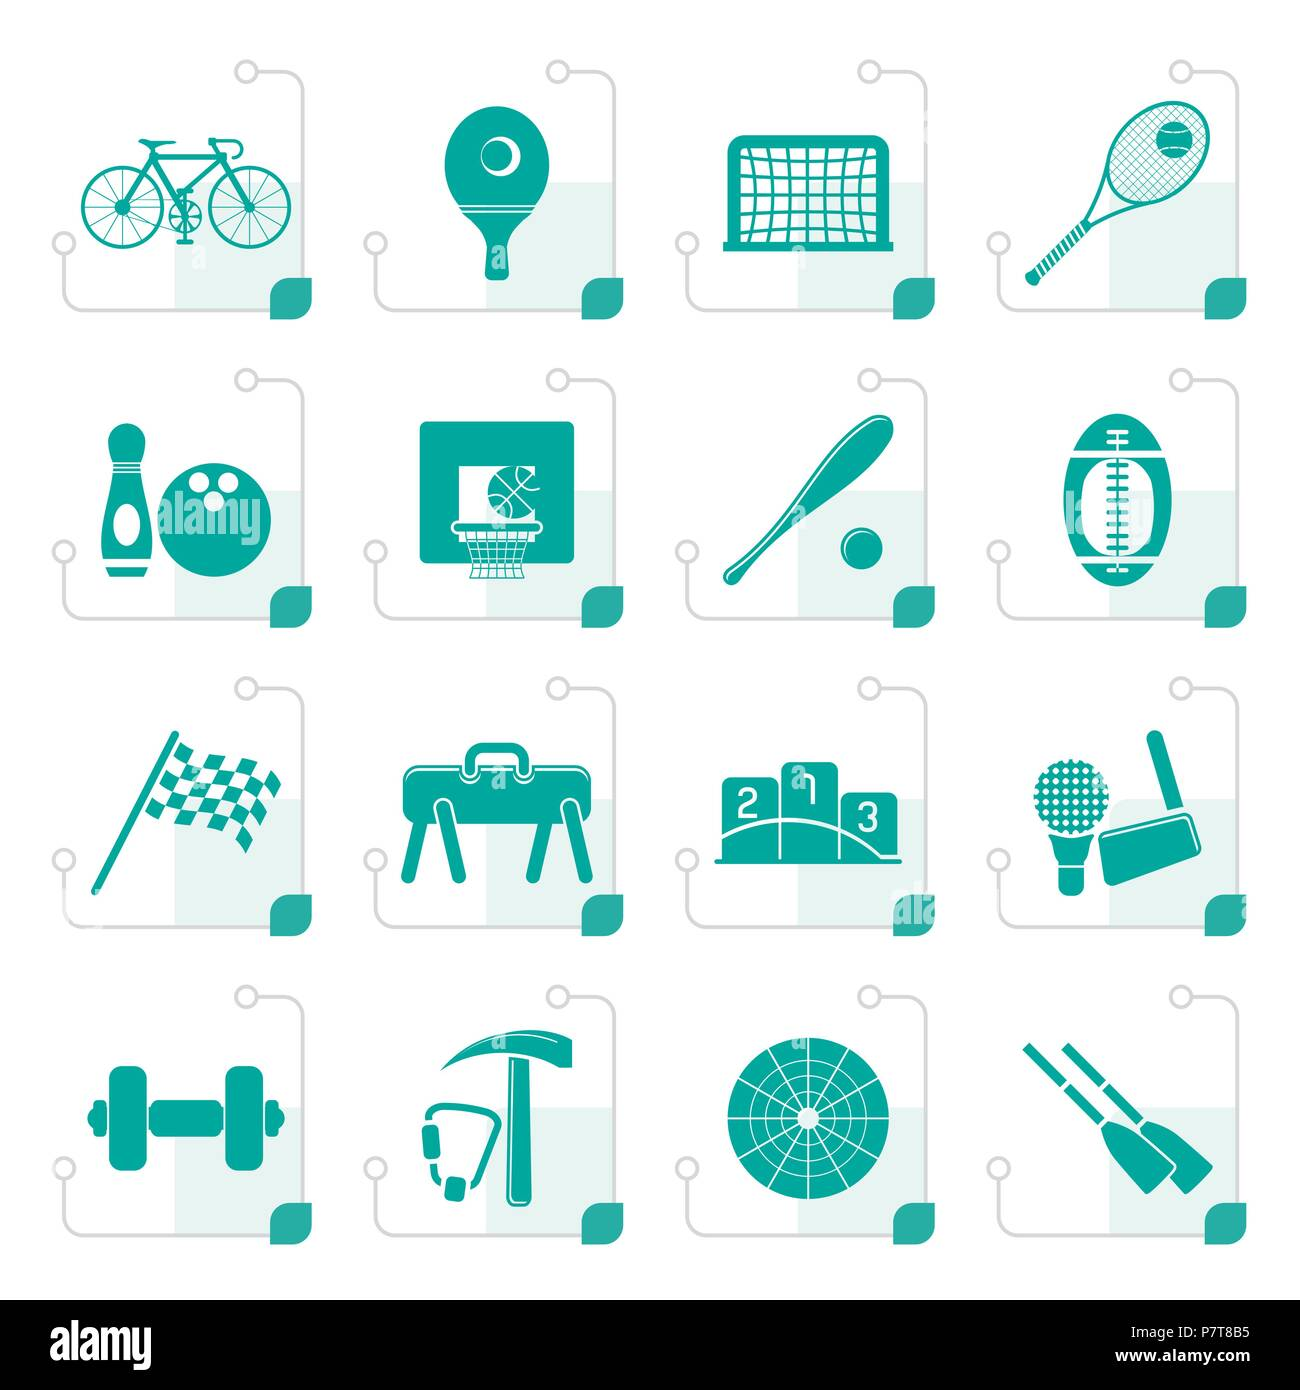 Stylized  Simple Sports gear and tools icons - vector icon set - Stock Vector